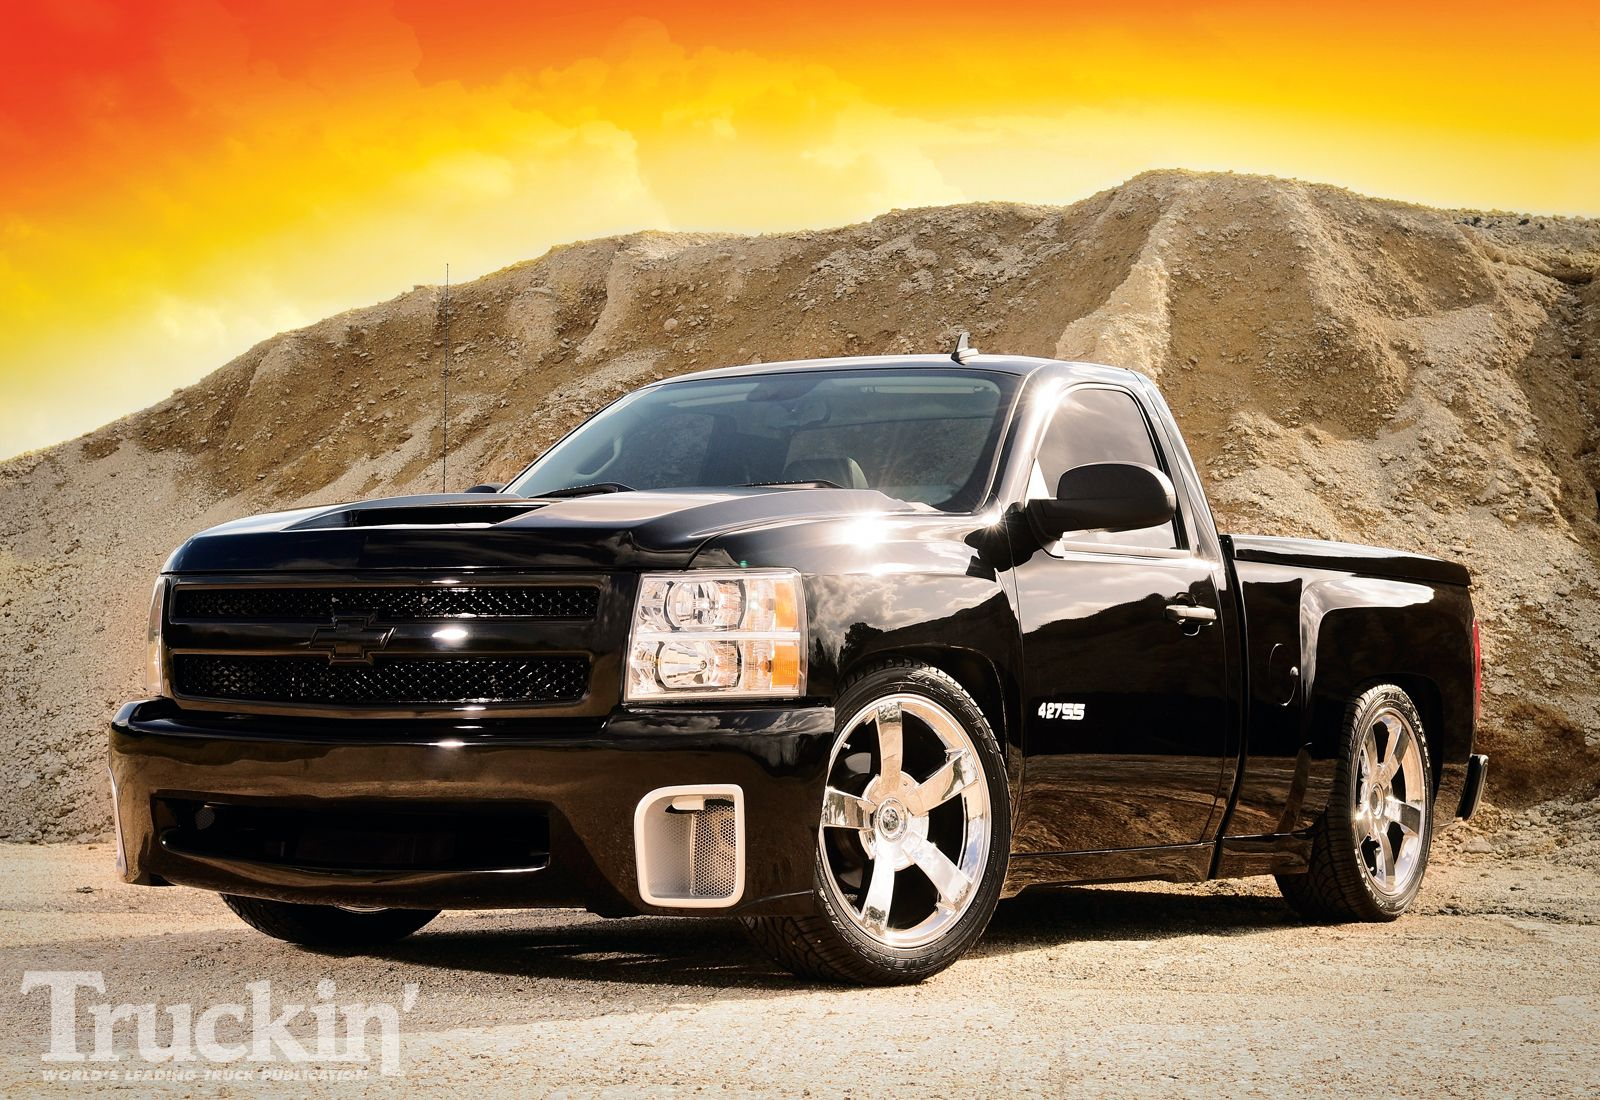 All Types single cab silverado ss : Chevrolet Silverado 427 SS | trucks | Pinterest | Chevrolet ...